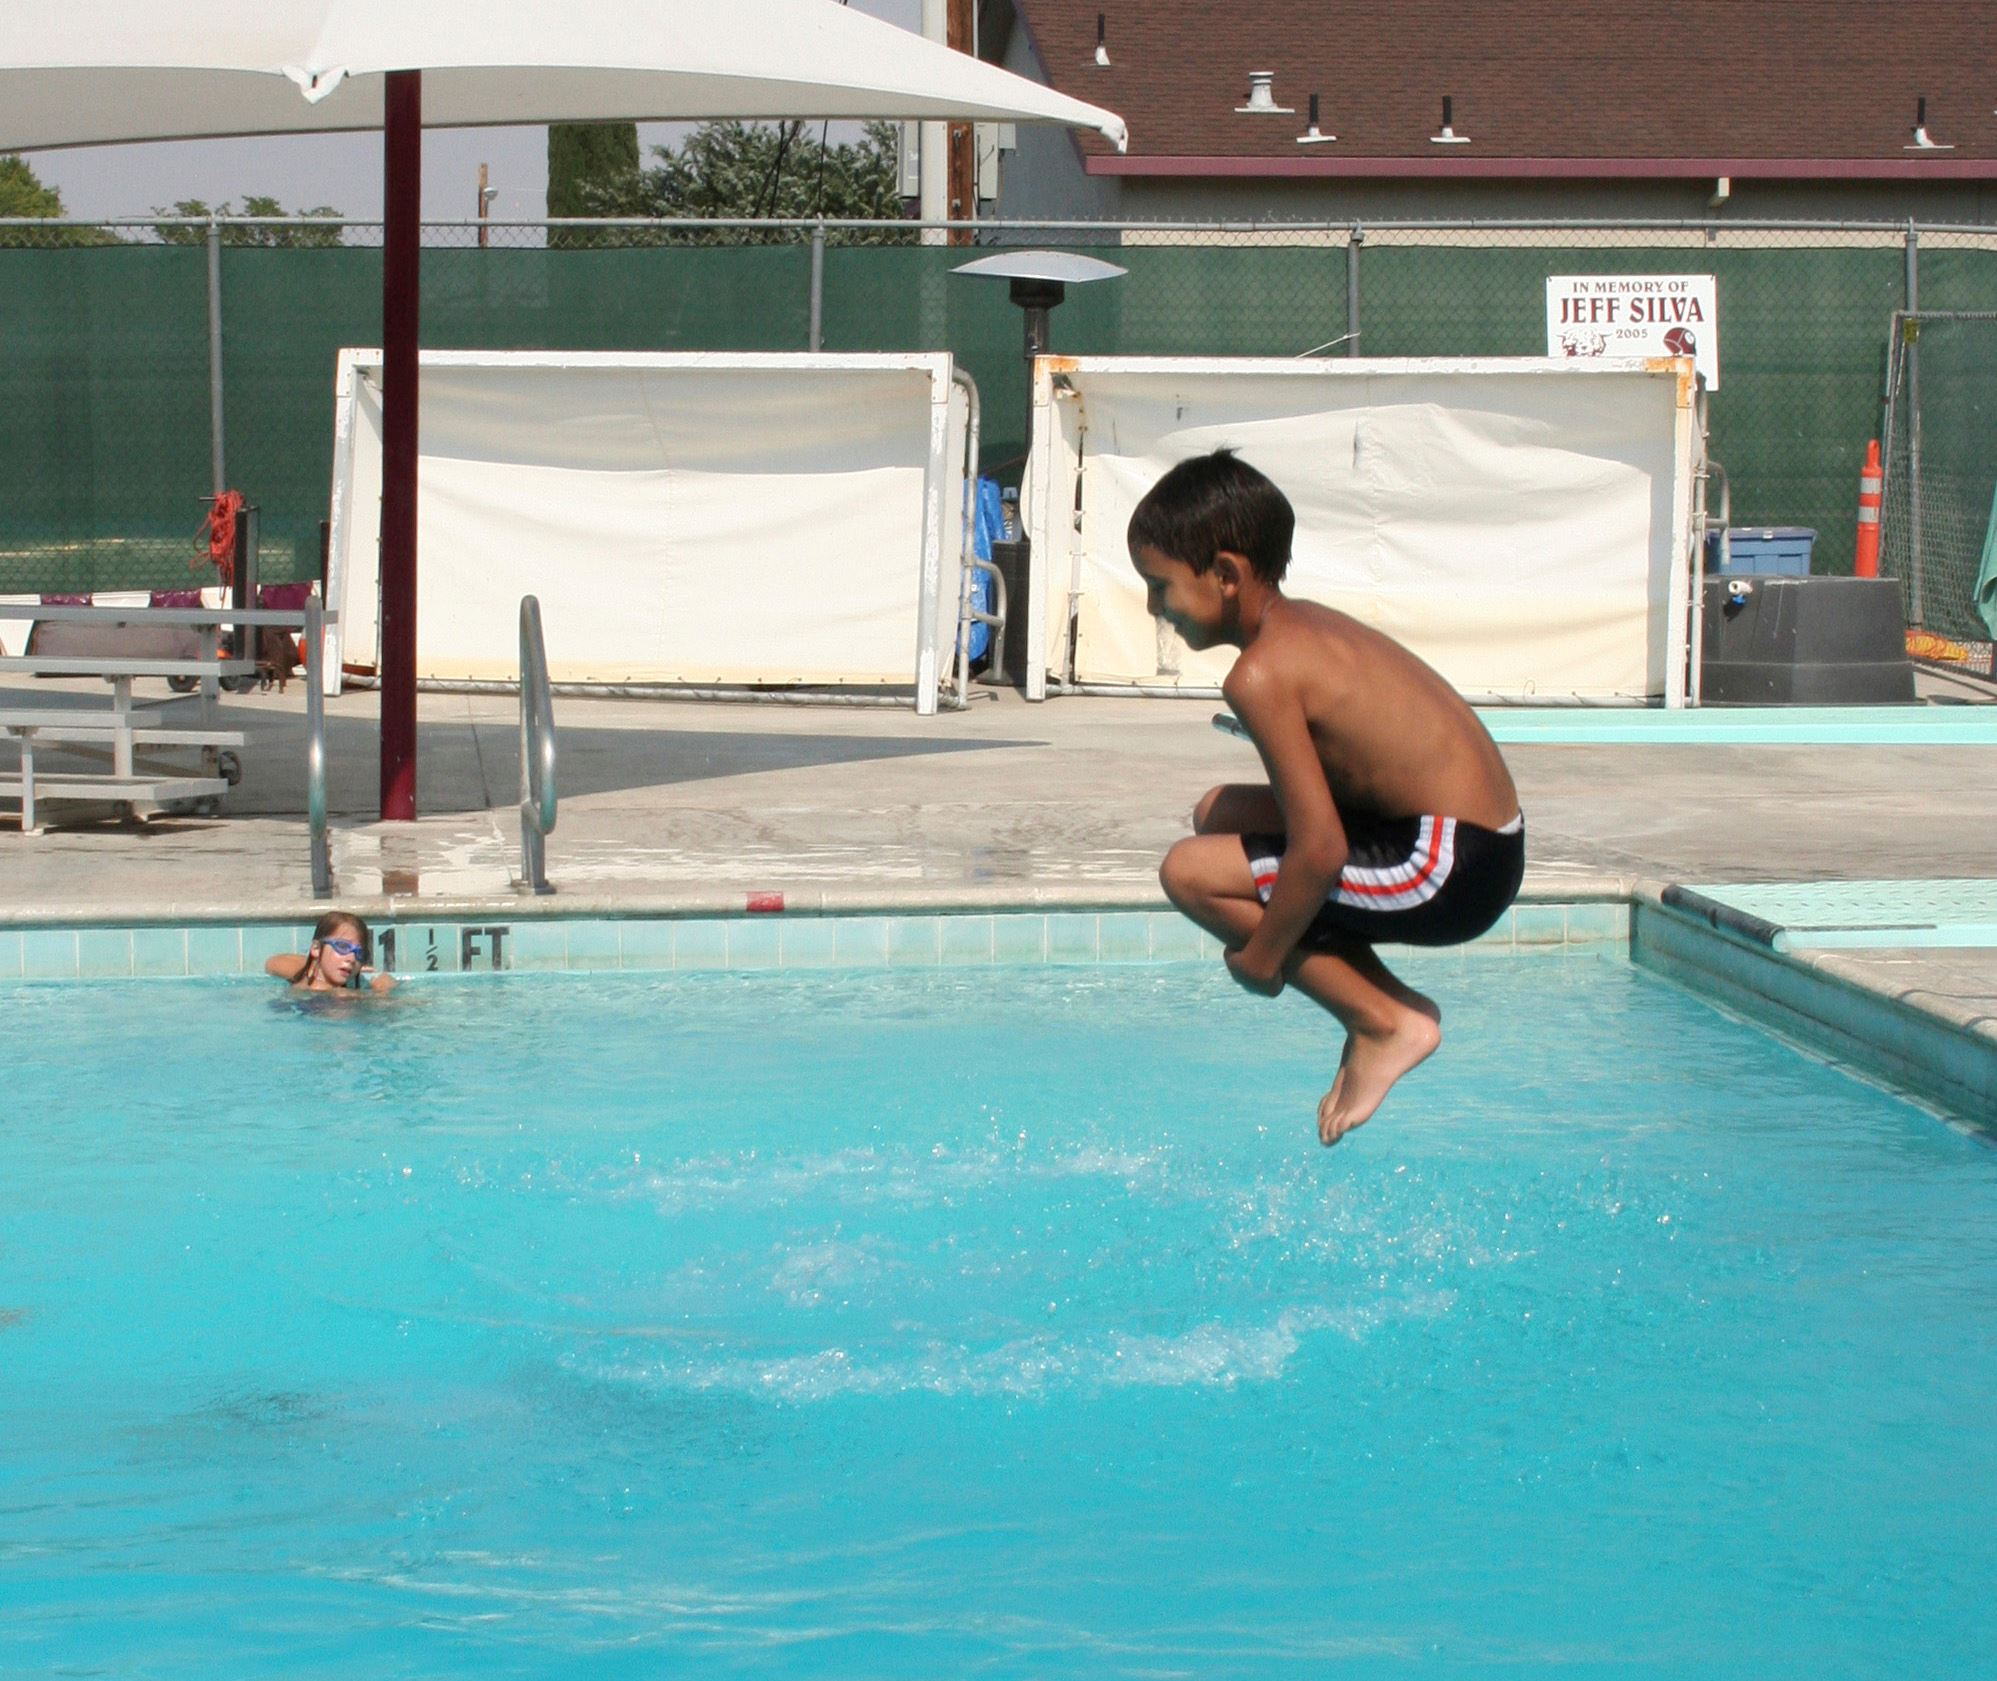 Cannonball at Municipal Pool